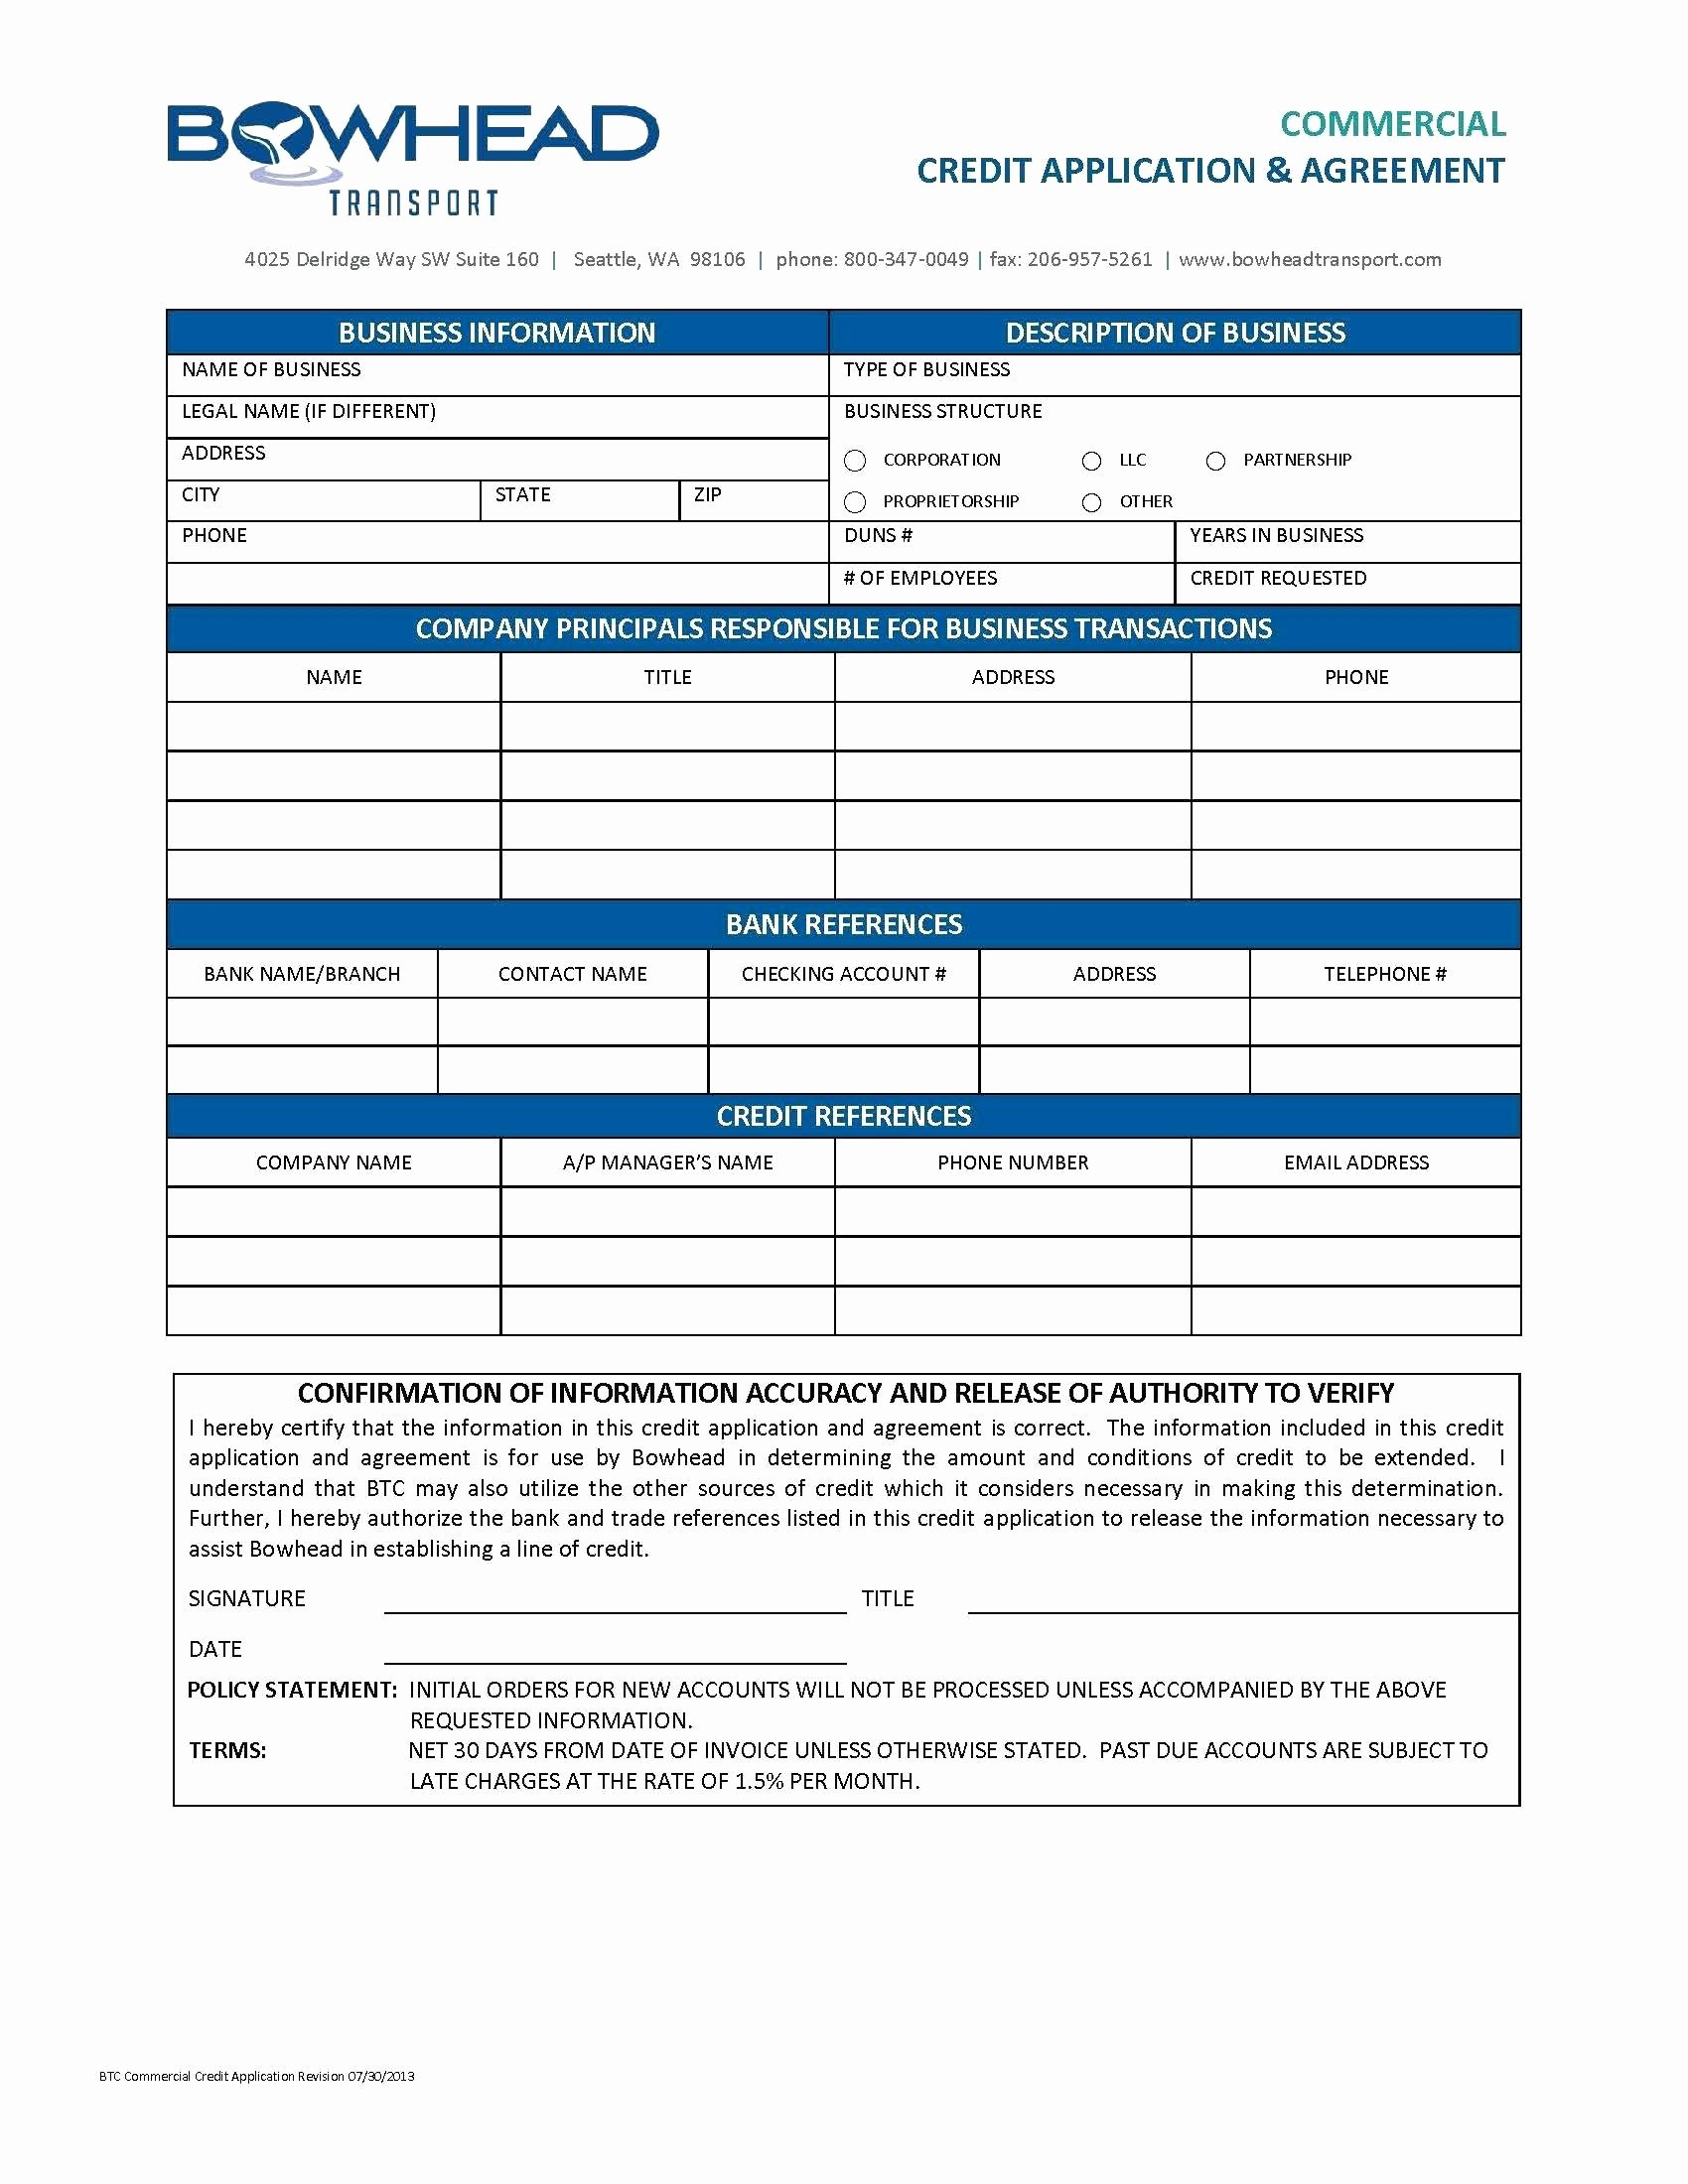 Template Template for Credit Application